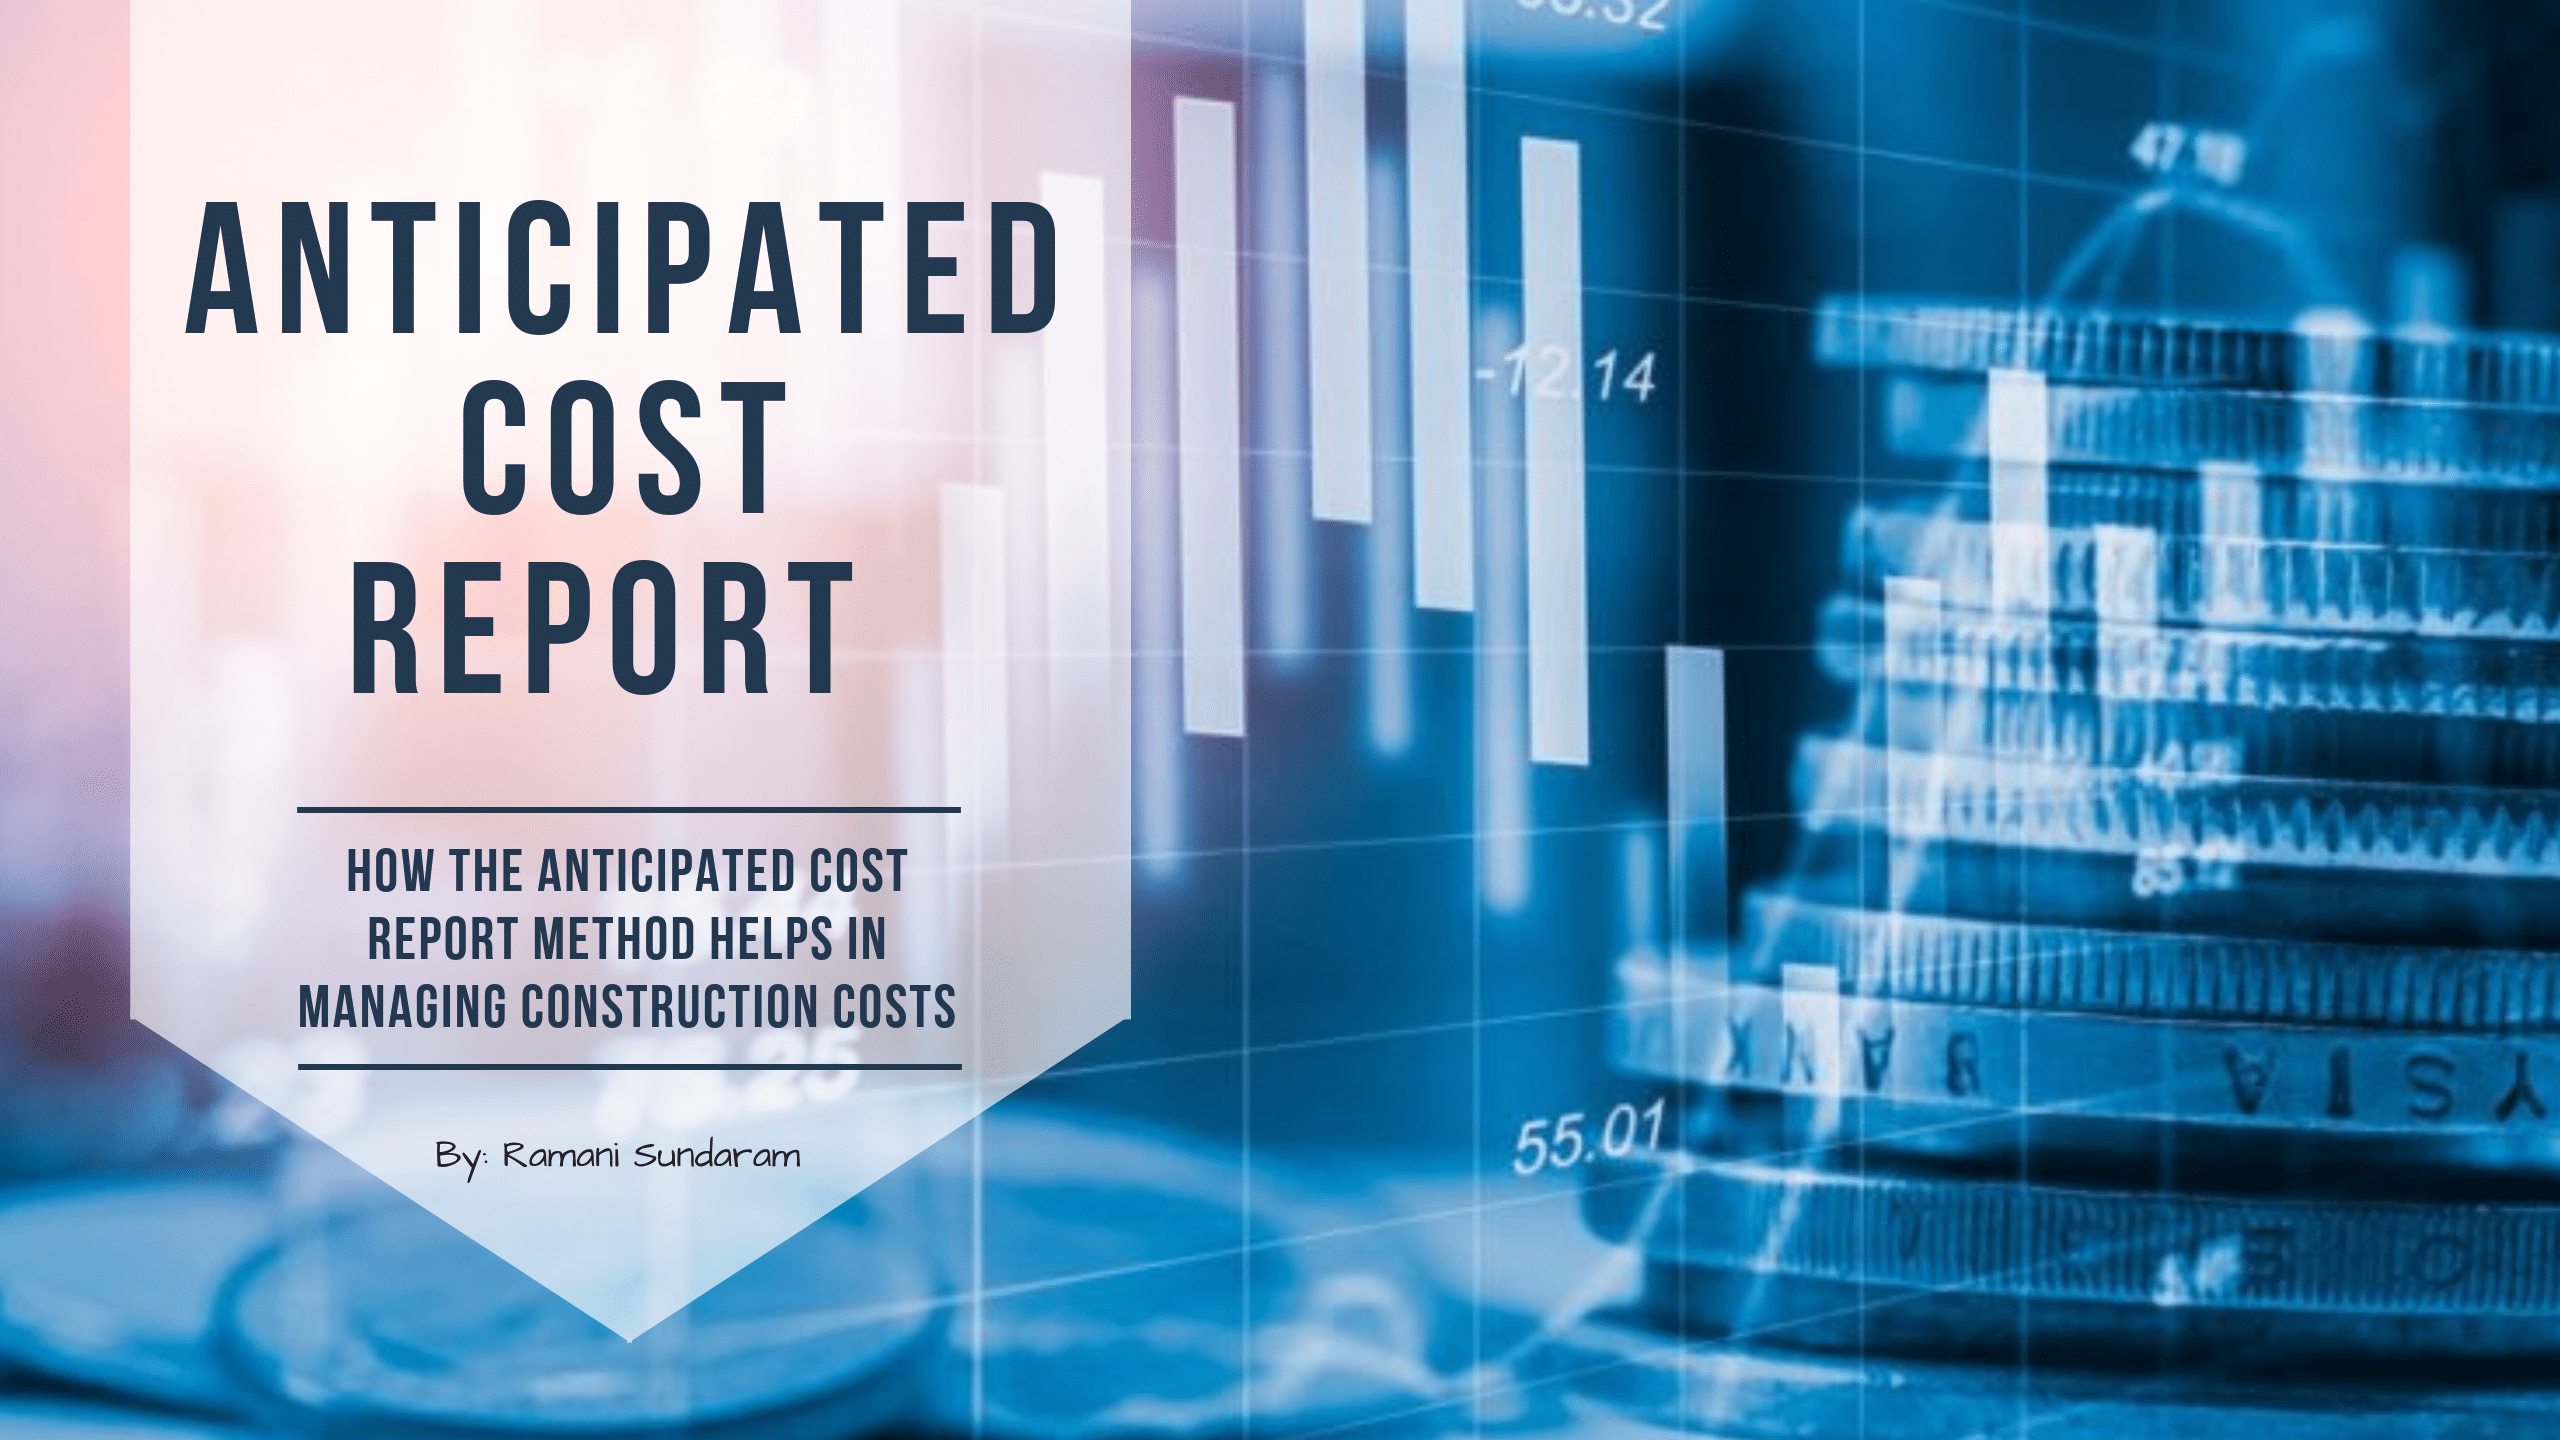 How the Anticipated Cost Report Method Helps in Managing